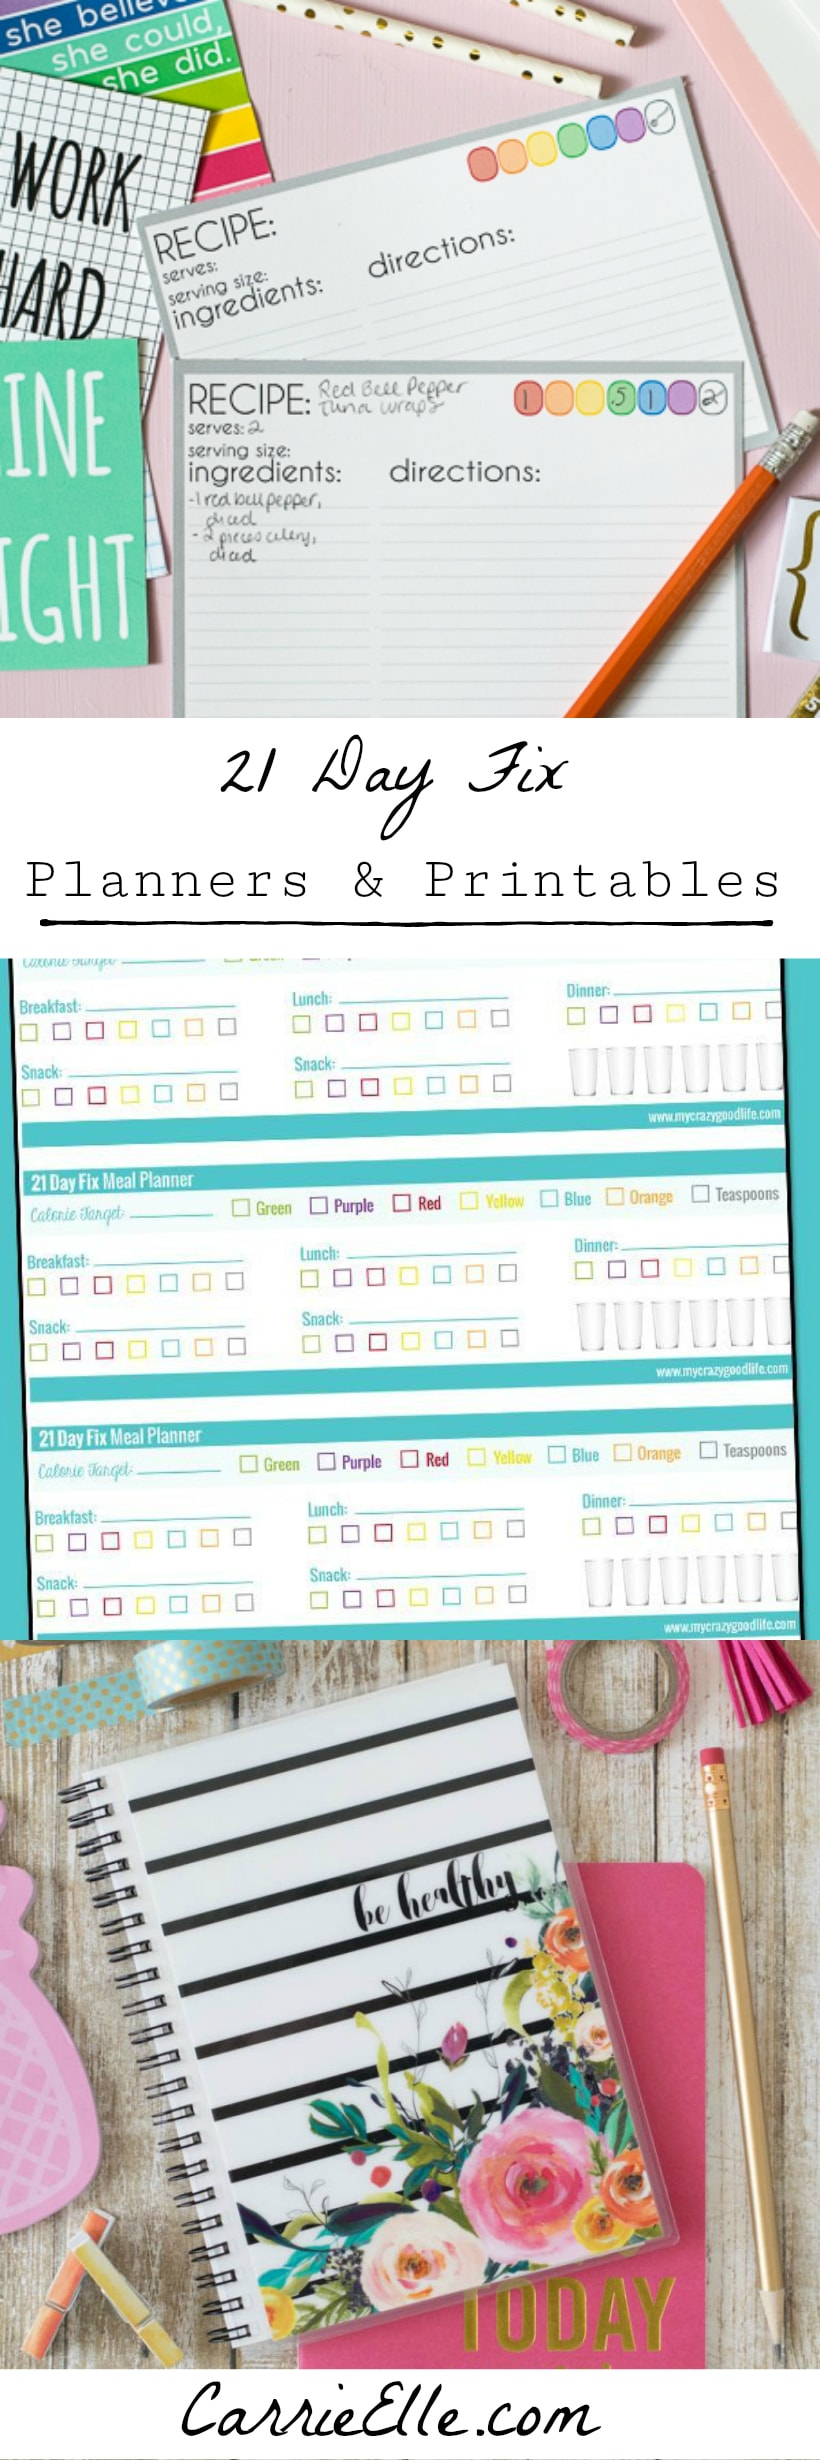 photo about 21 Day Fix Meal Planner Printable known as 21 Working day Repair Planners Printables - Carrie Elle